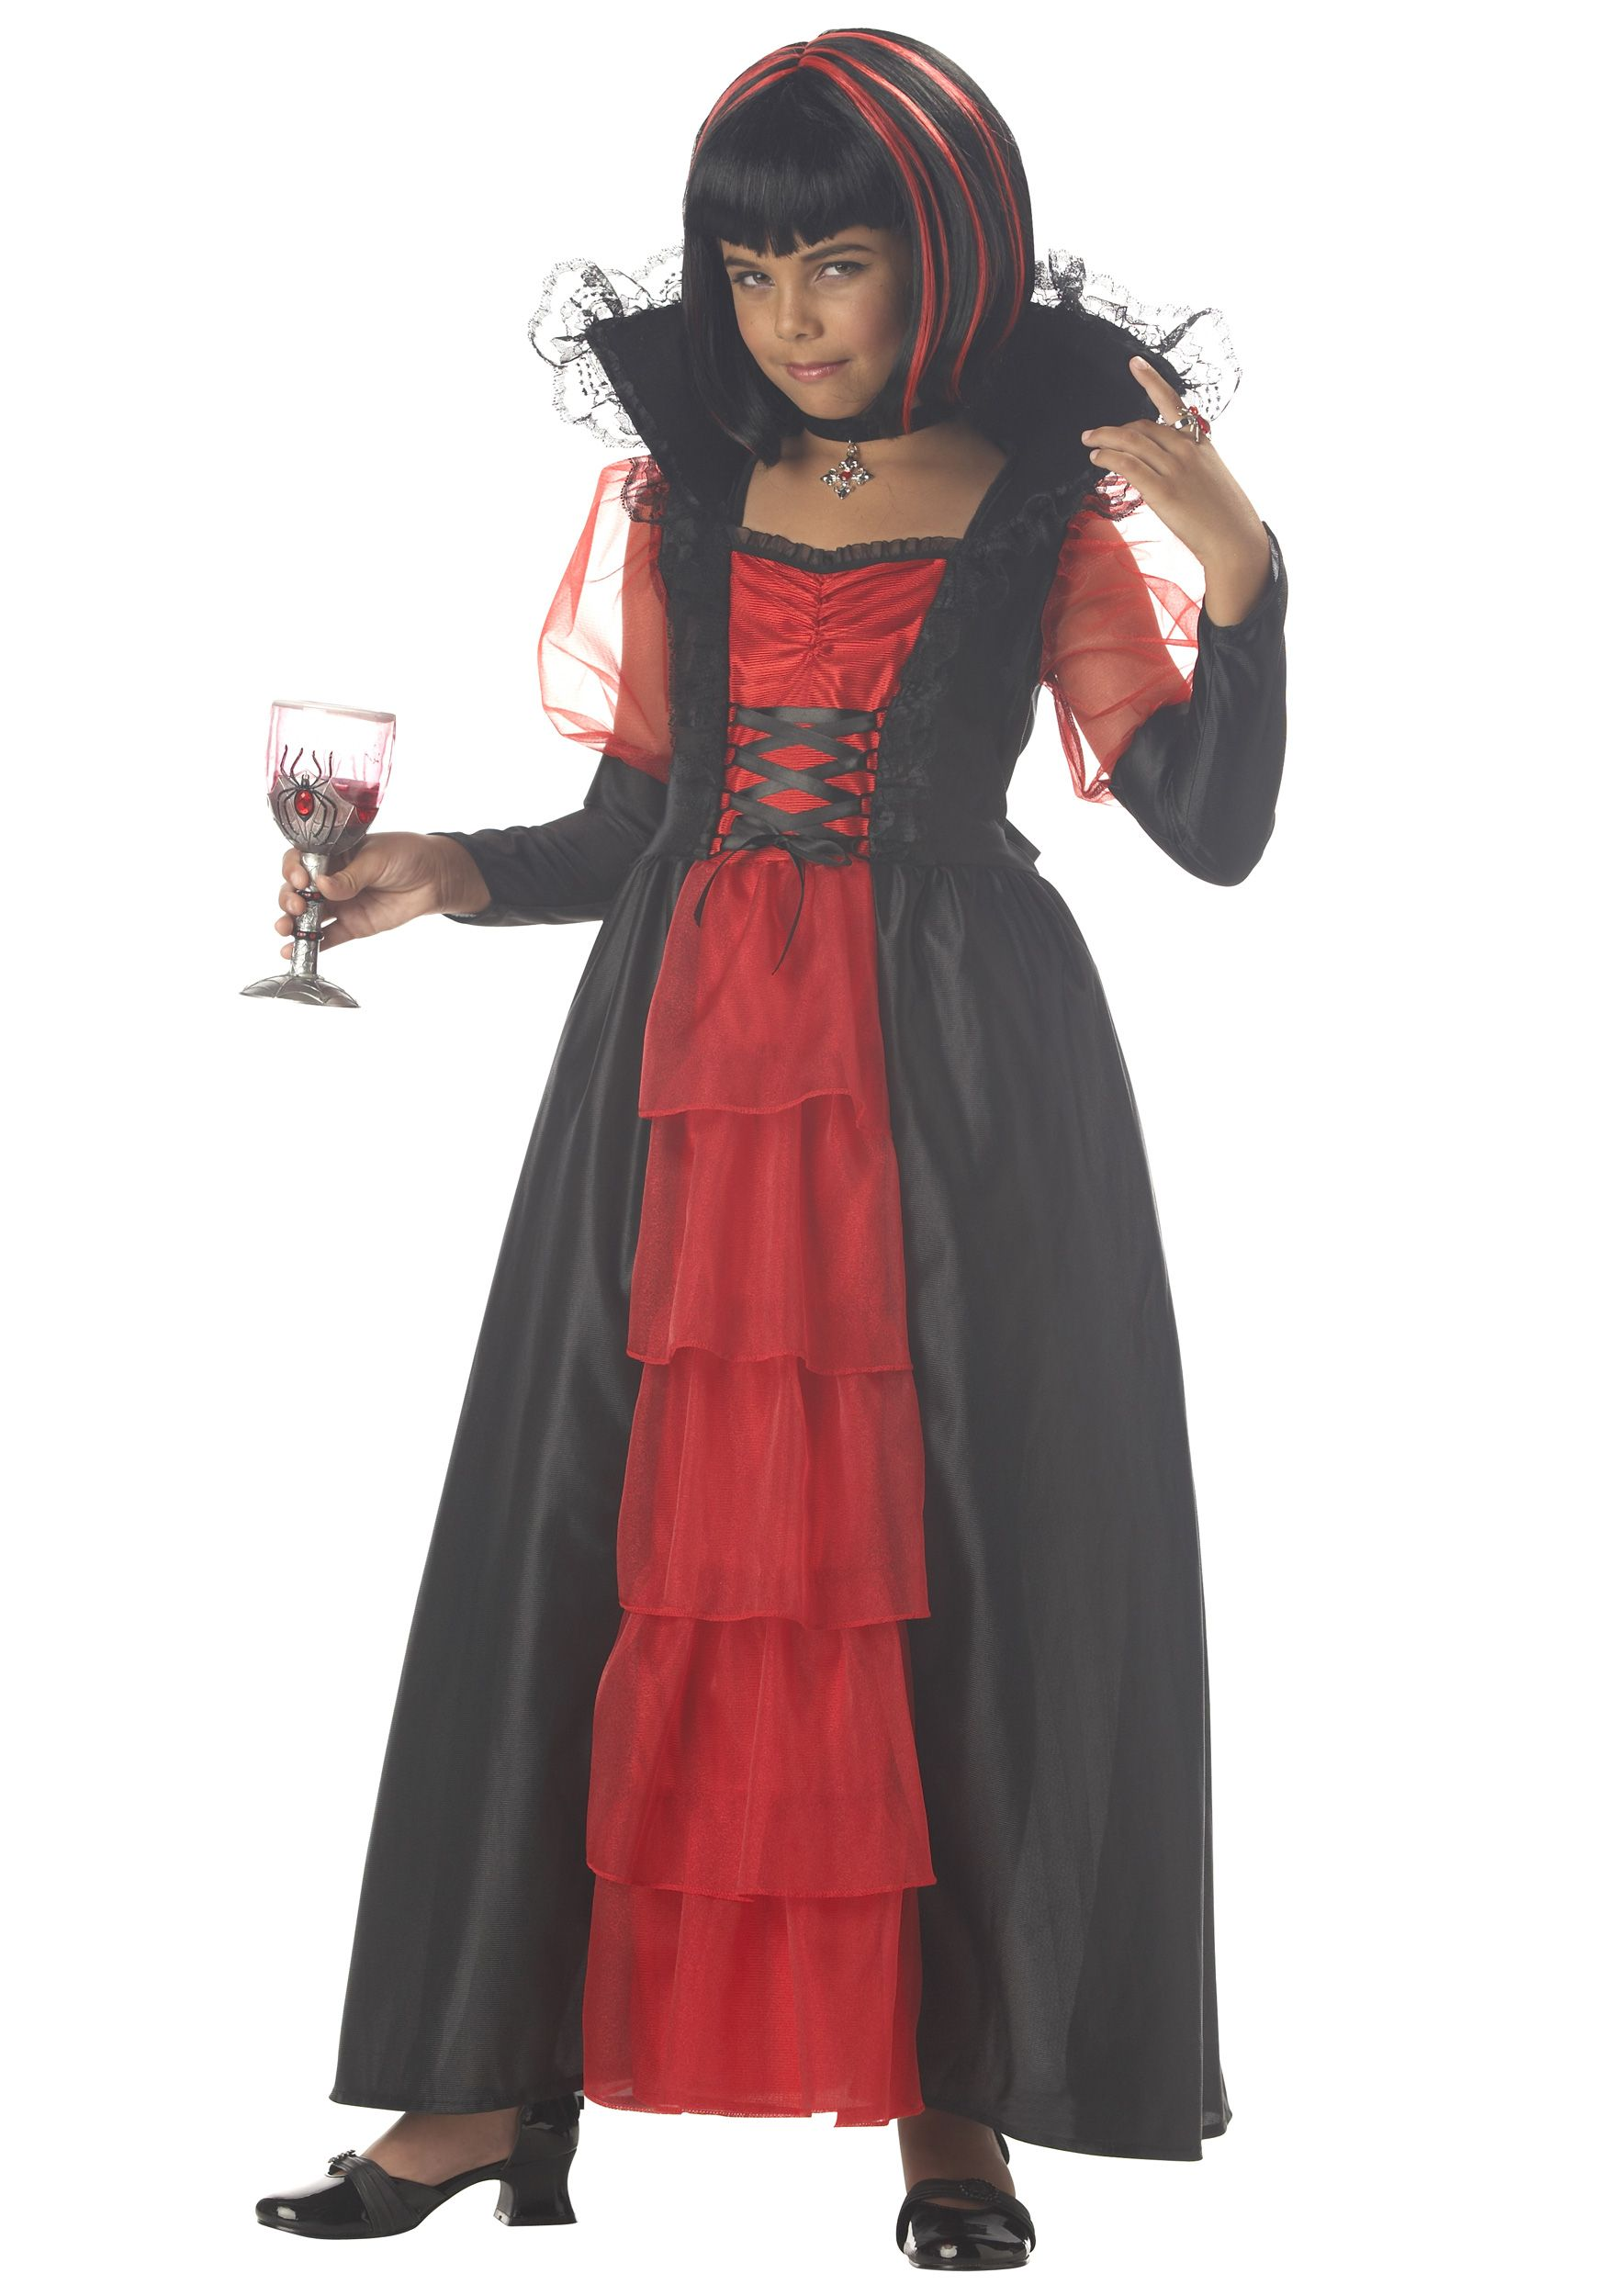 Vampire Costumes for Girls. scary/not too scary? Girls